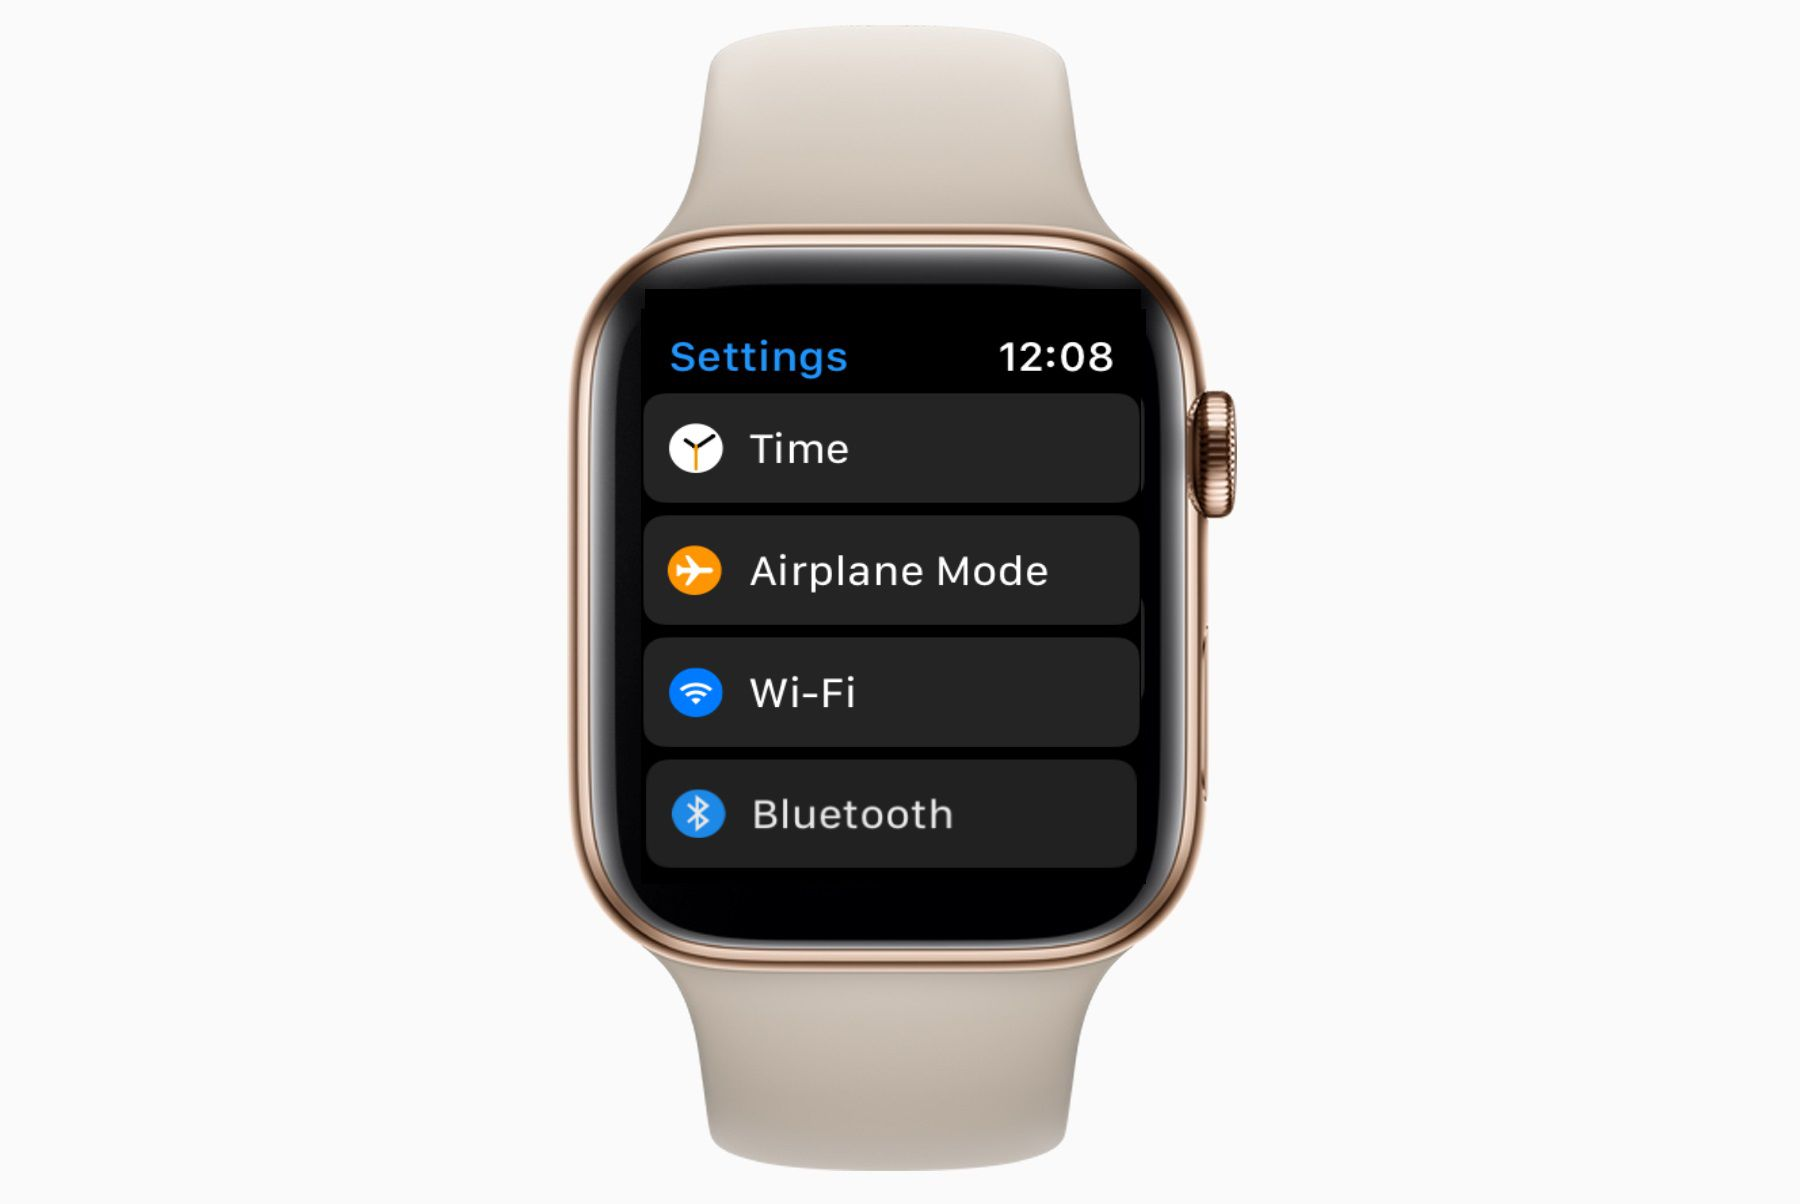 An Apple Watch showing the Settings app